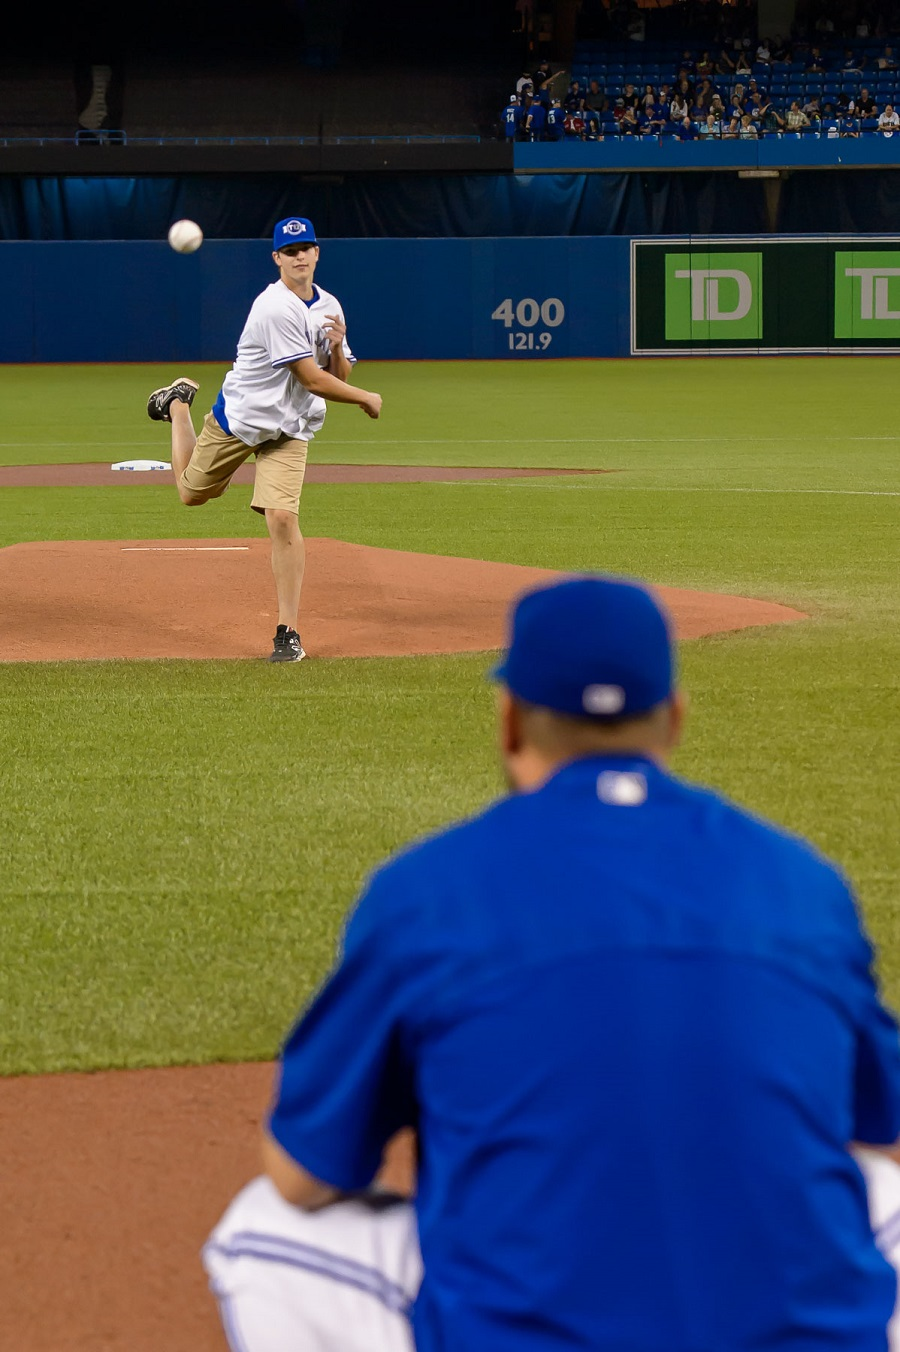 Prairies MVP Carson Perkins (2-0) threw out the first ceremonial pitch to Blue Jays LHP Mark Buehrle before the Boston Red Sox-Jays game Friday night. Photo Michelle Prata.